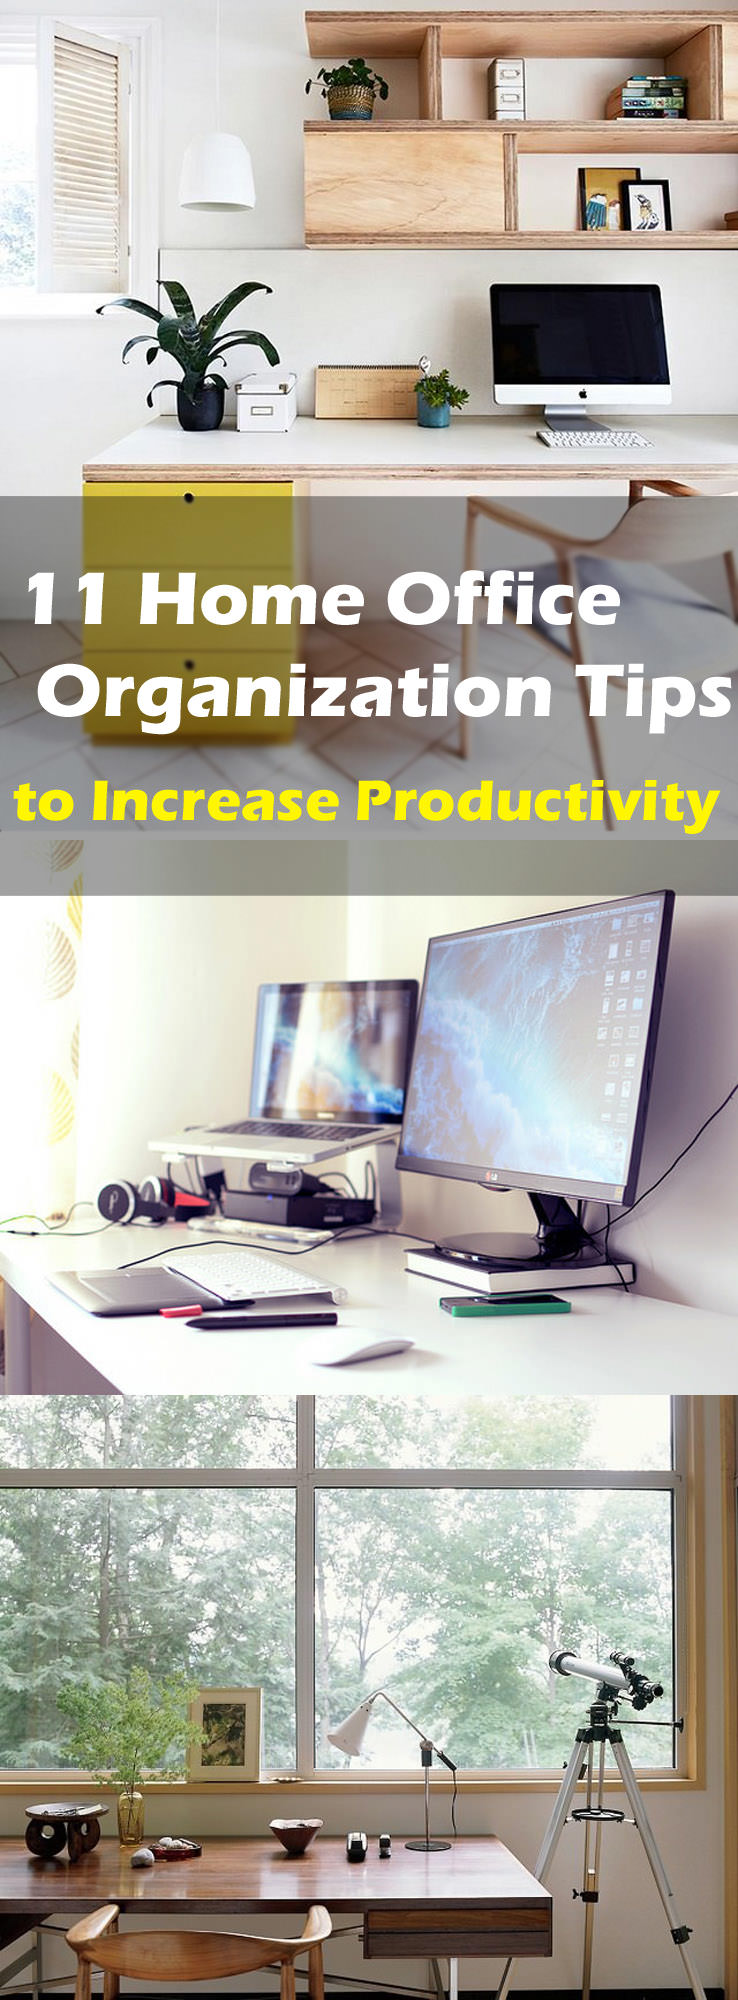 Check out these 11 useful office organization tips. Organizing home office can improve your productivity and efficiency at work.